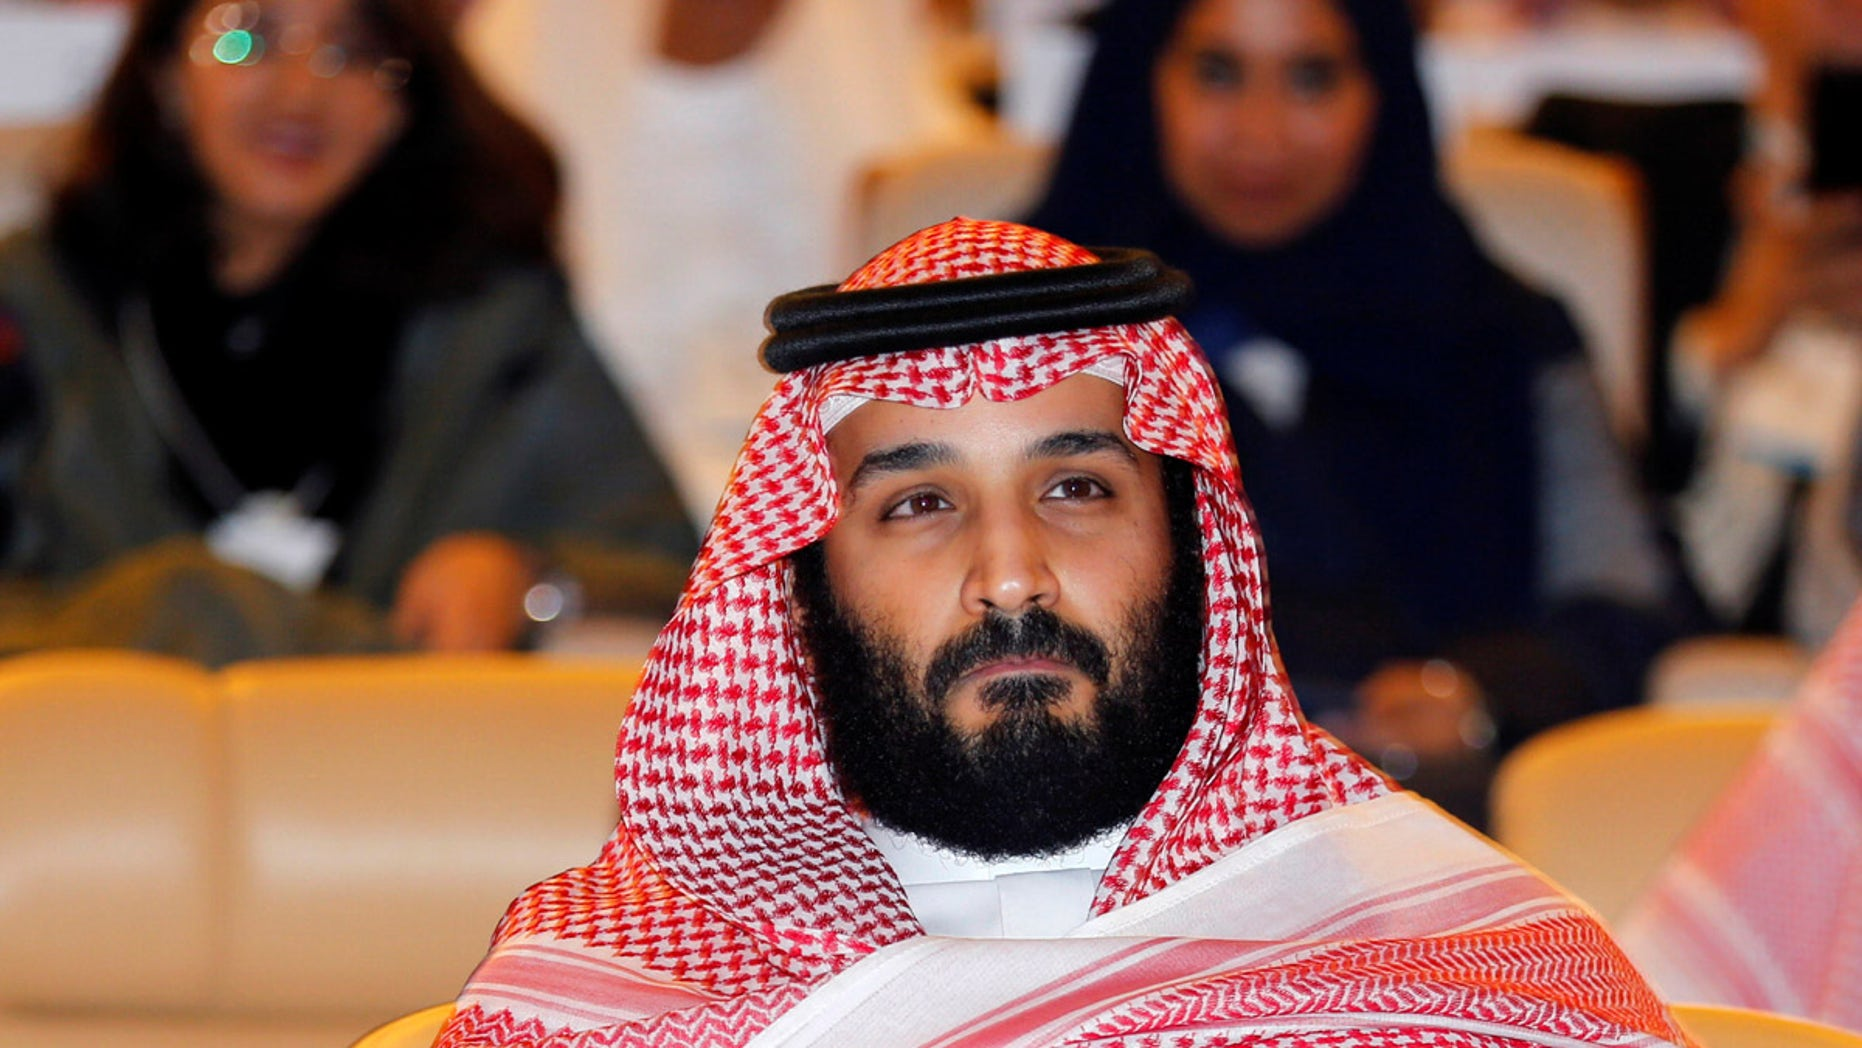 Saudi Crown Prince Mohammed bin Salman attends the Future Investment initiative conference in Riyadh, Saudi Arabia, Oct. 24, 2017.